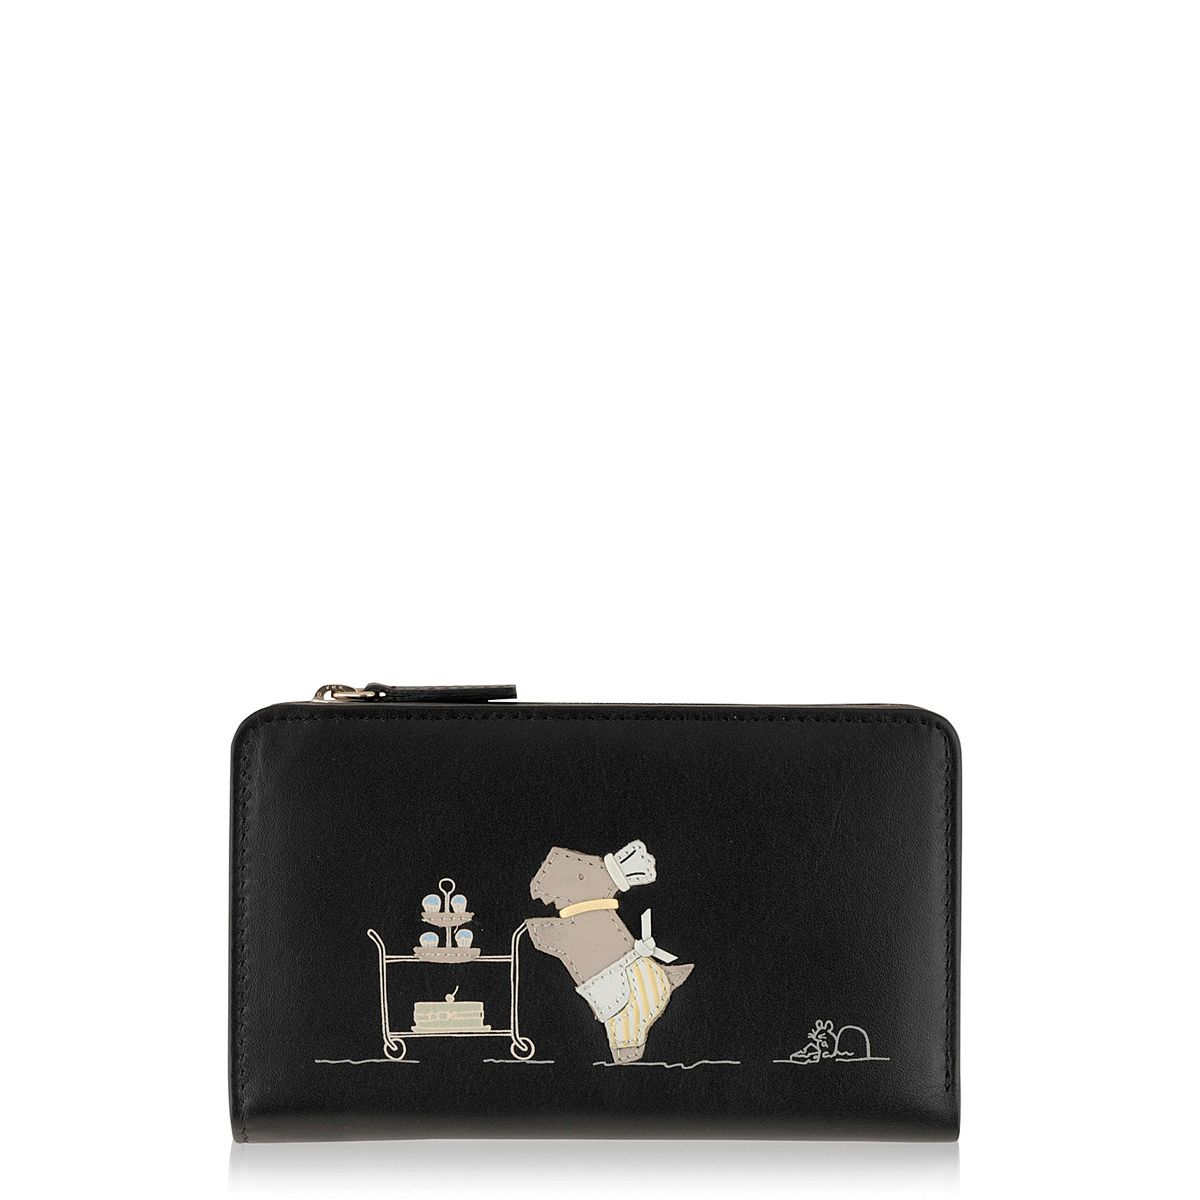 Patisserie Raderlie medium black zip around purse